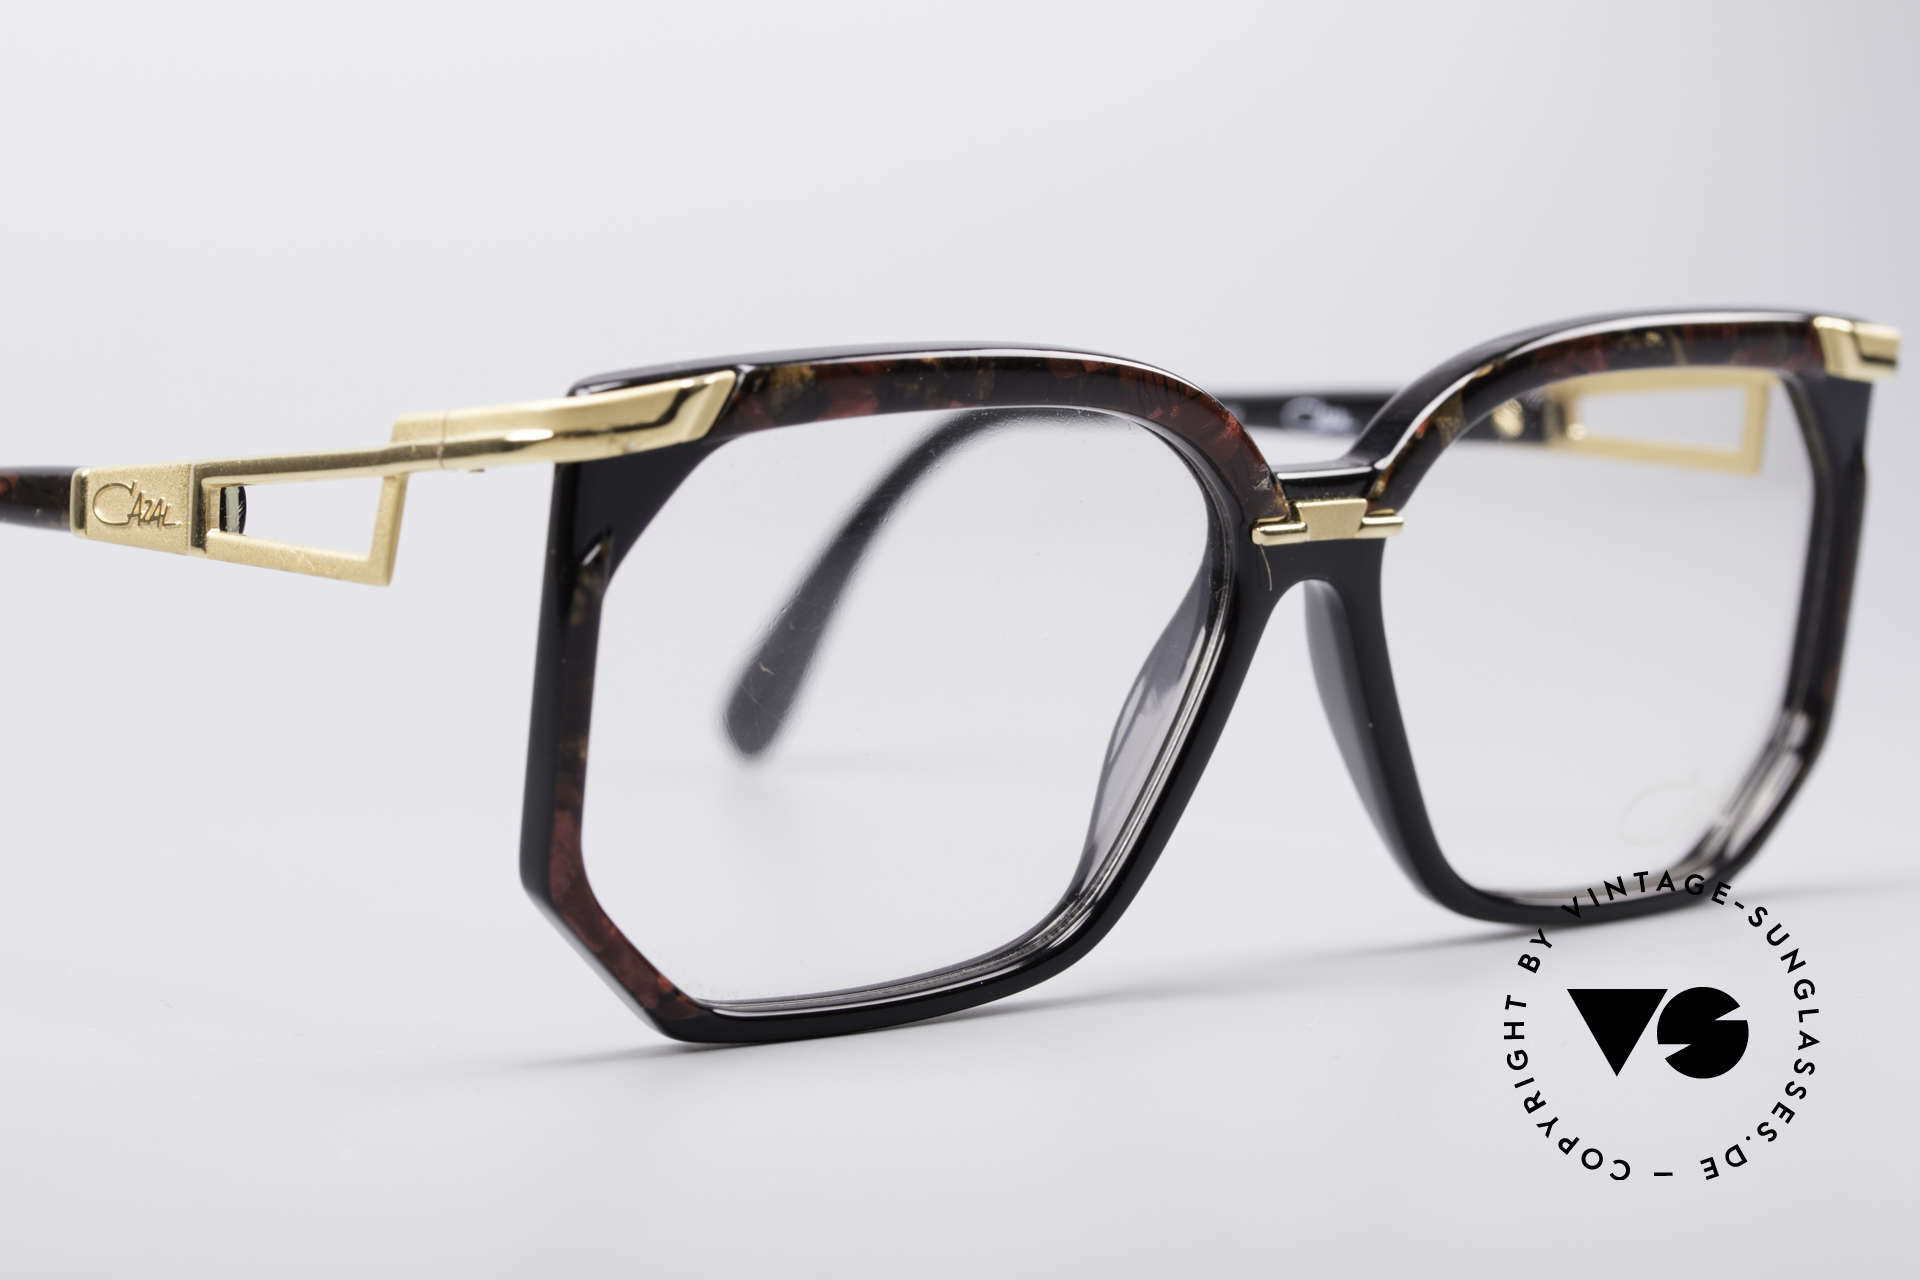 Cazal 333 True Vintage HipHop Frame, clear CAZAL demo lenses can be replaced optionally, Made for Men and Women